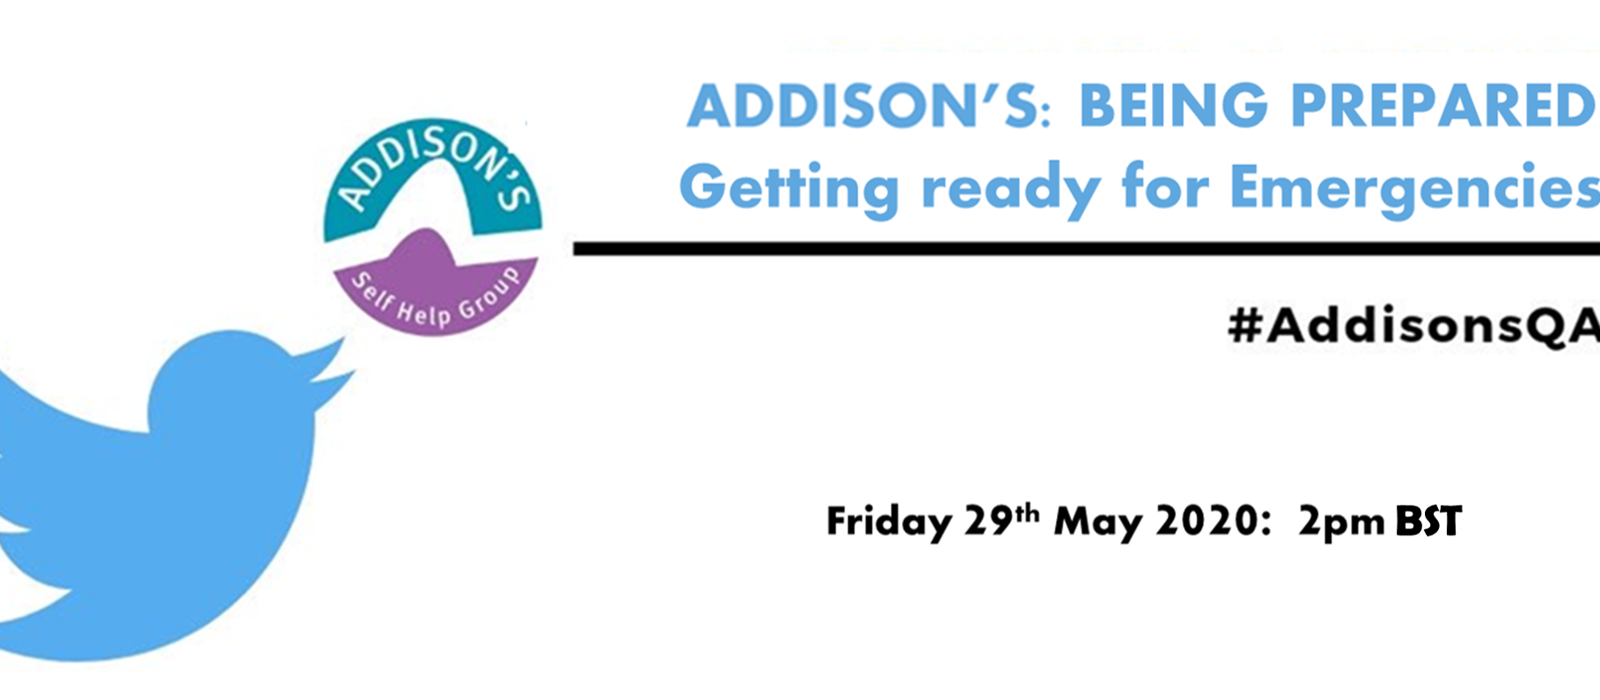 International Addison's Day Twitter Chat - Being Prepared For Emergencies - 20/05/2020